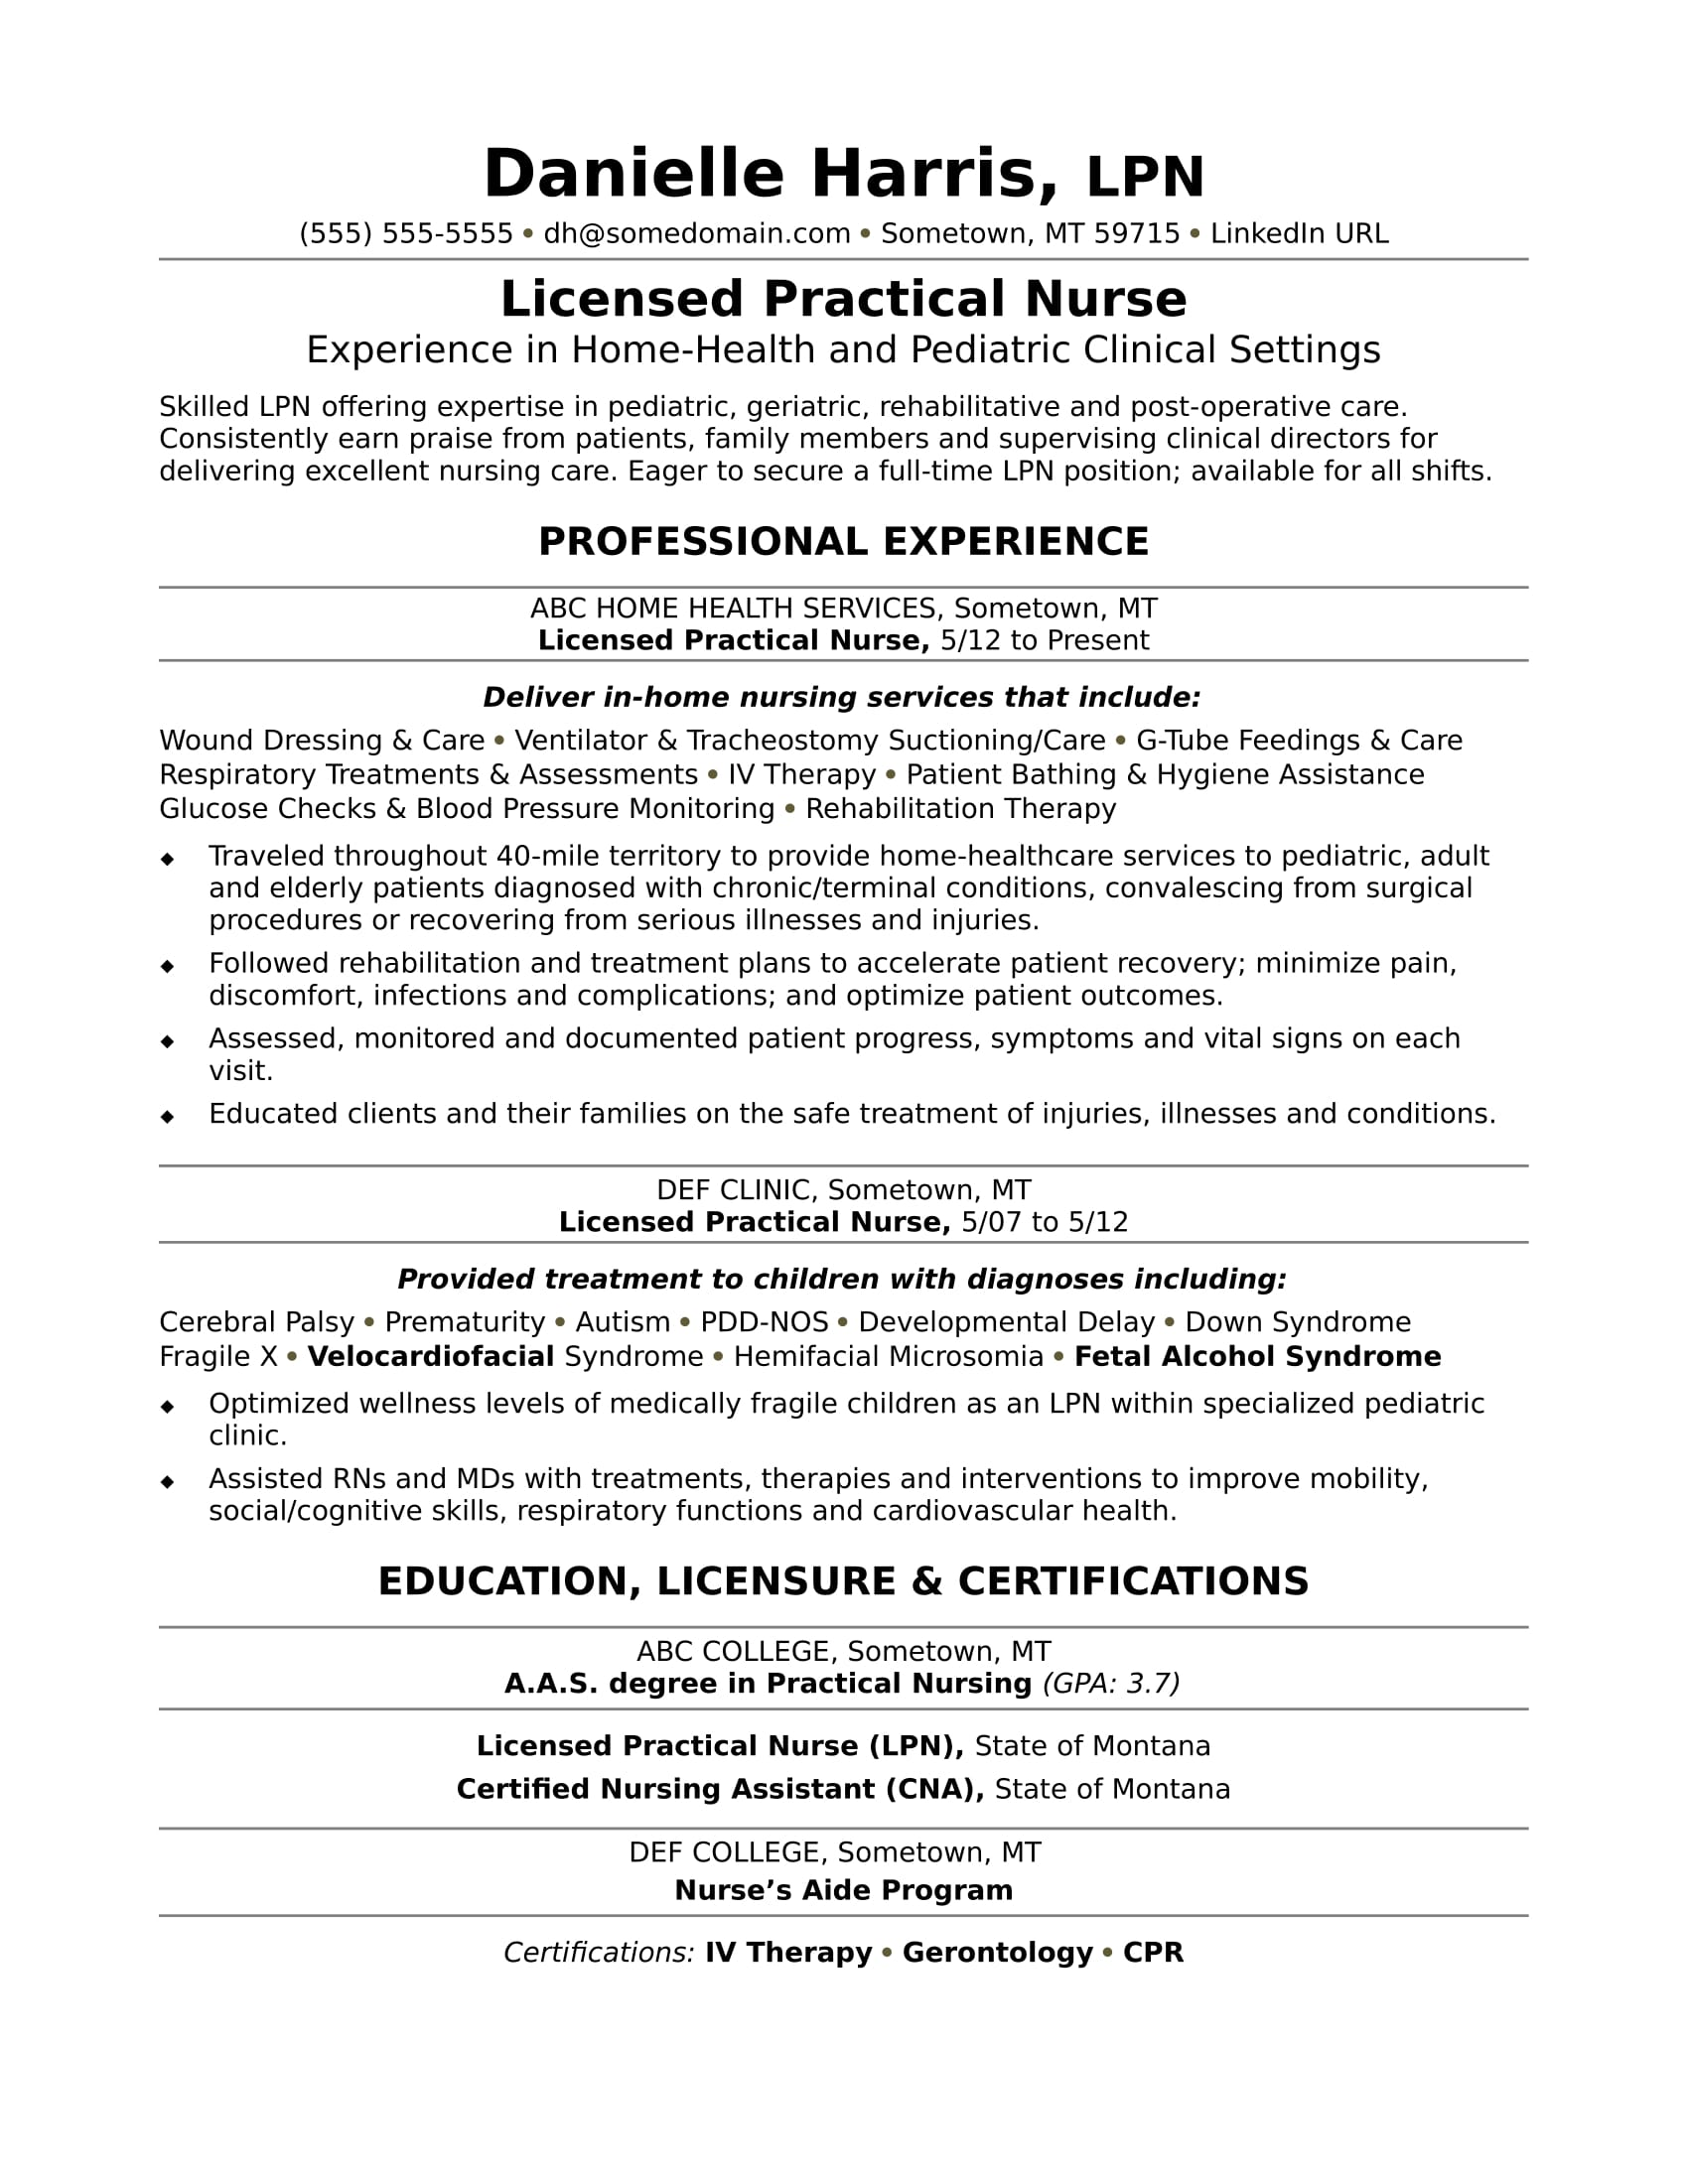 Licensed Practical Nurse Resume Sample  Nurse Resume